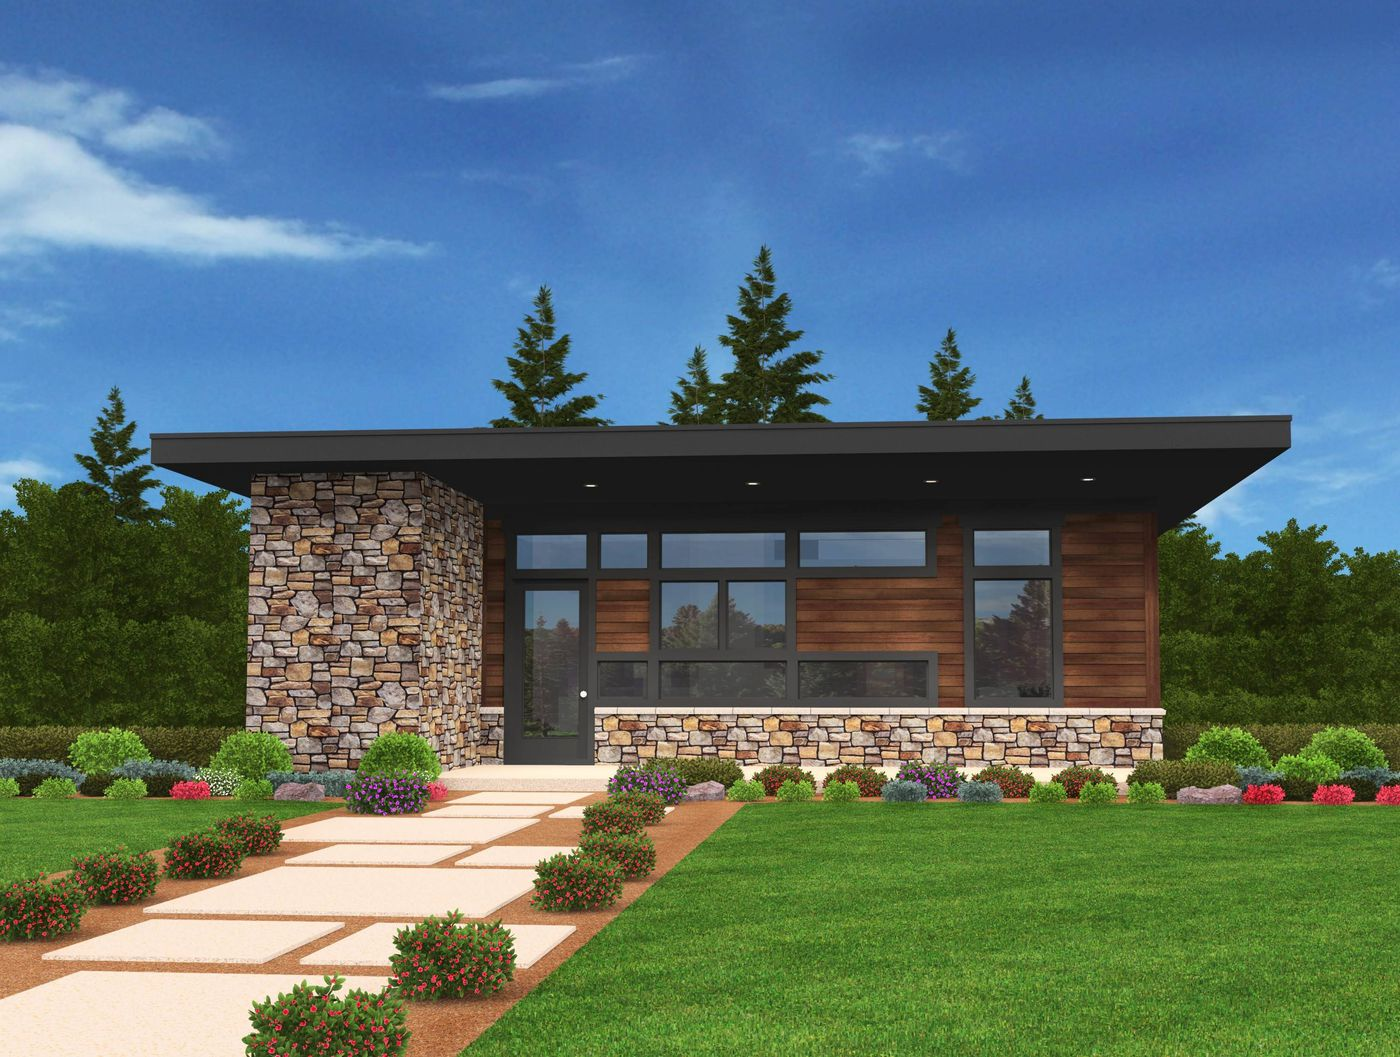 Build A New Home With A Mid Century Modern Vibe This Old House